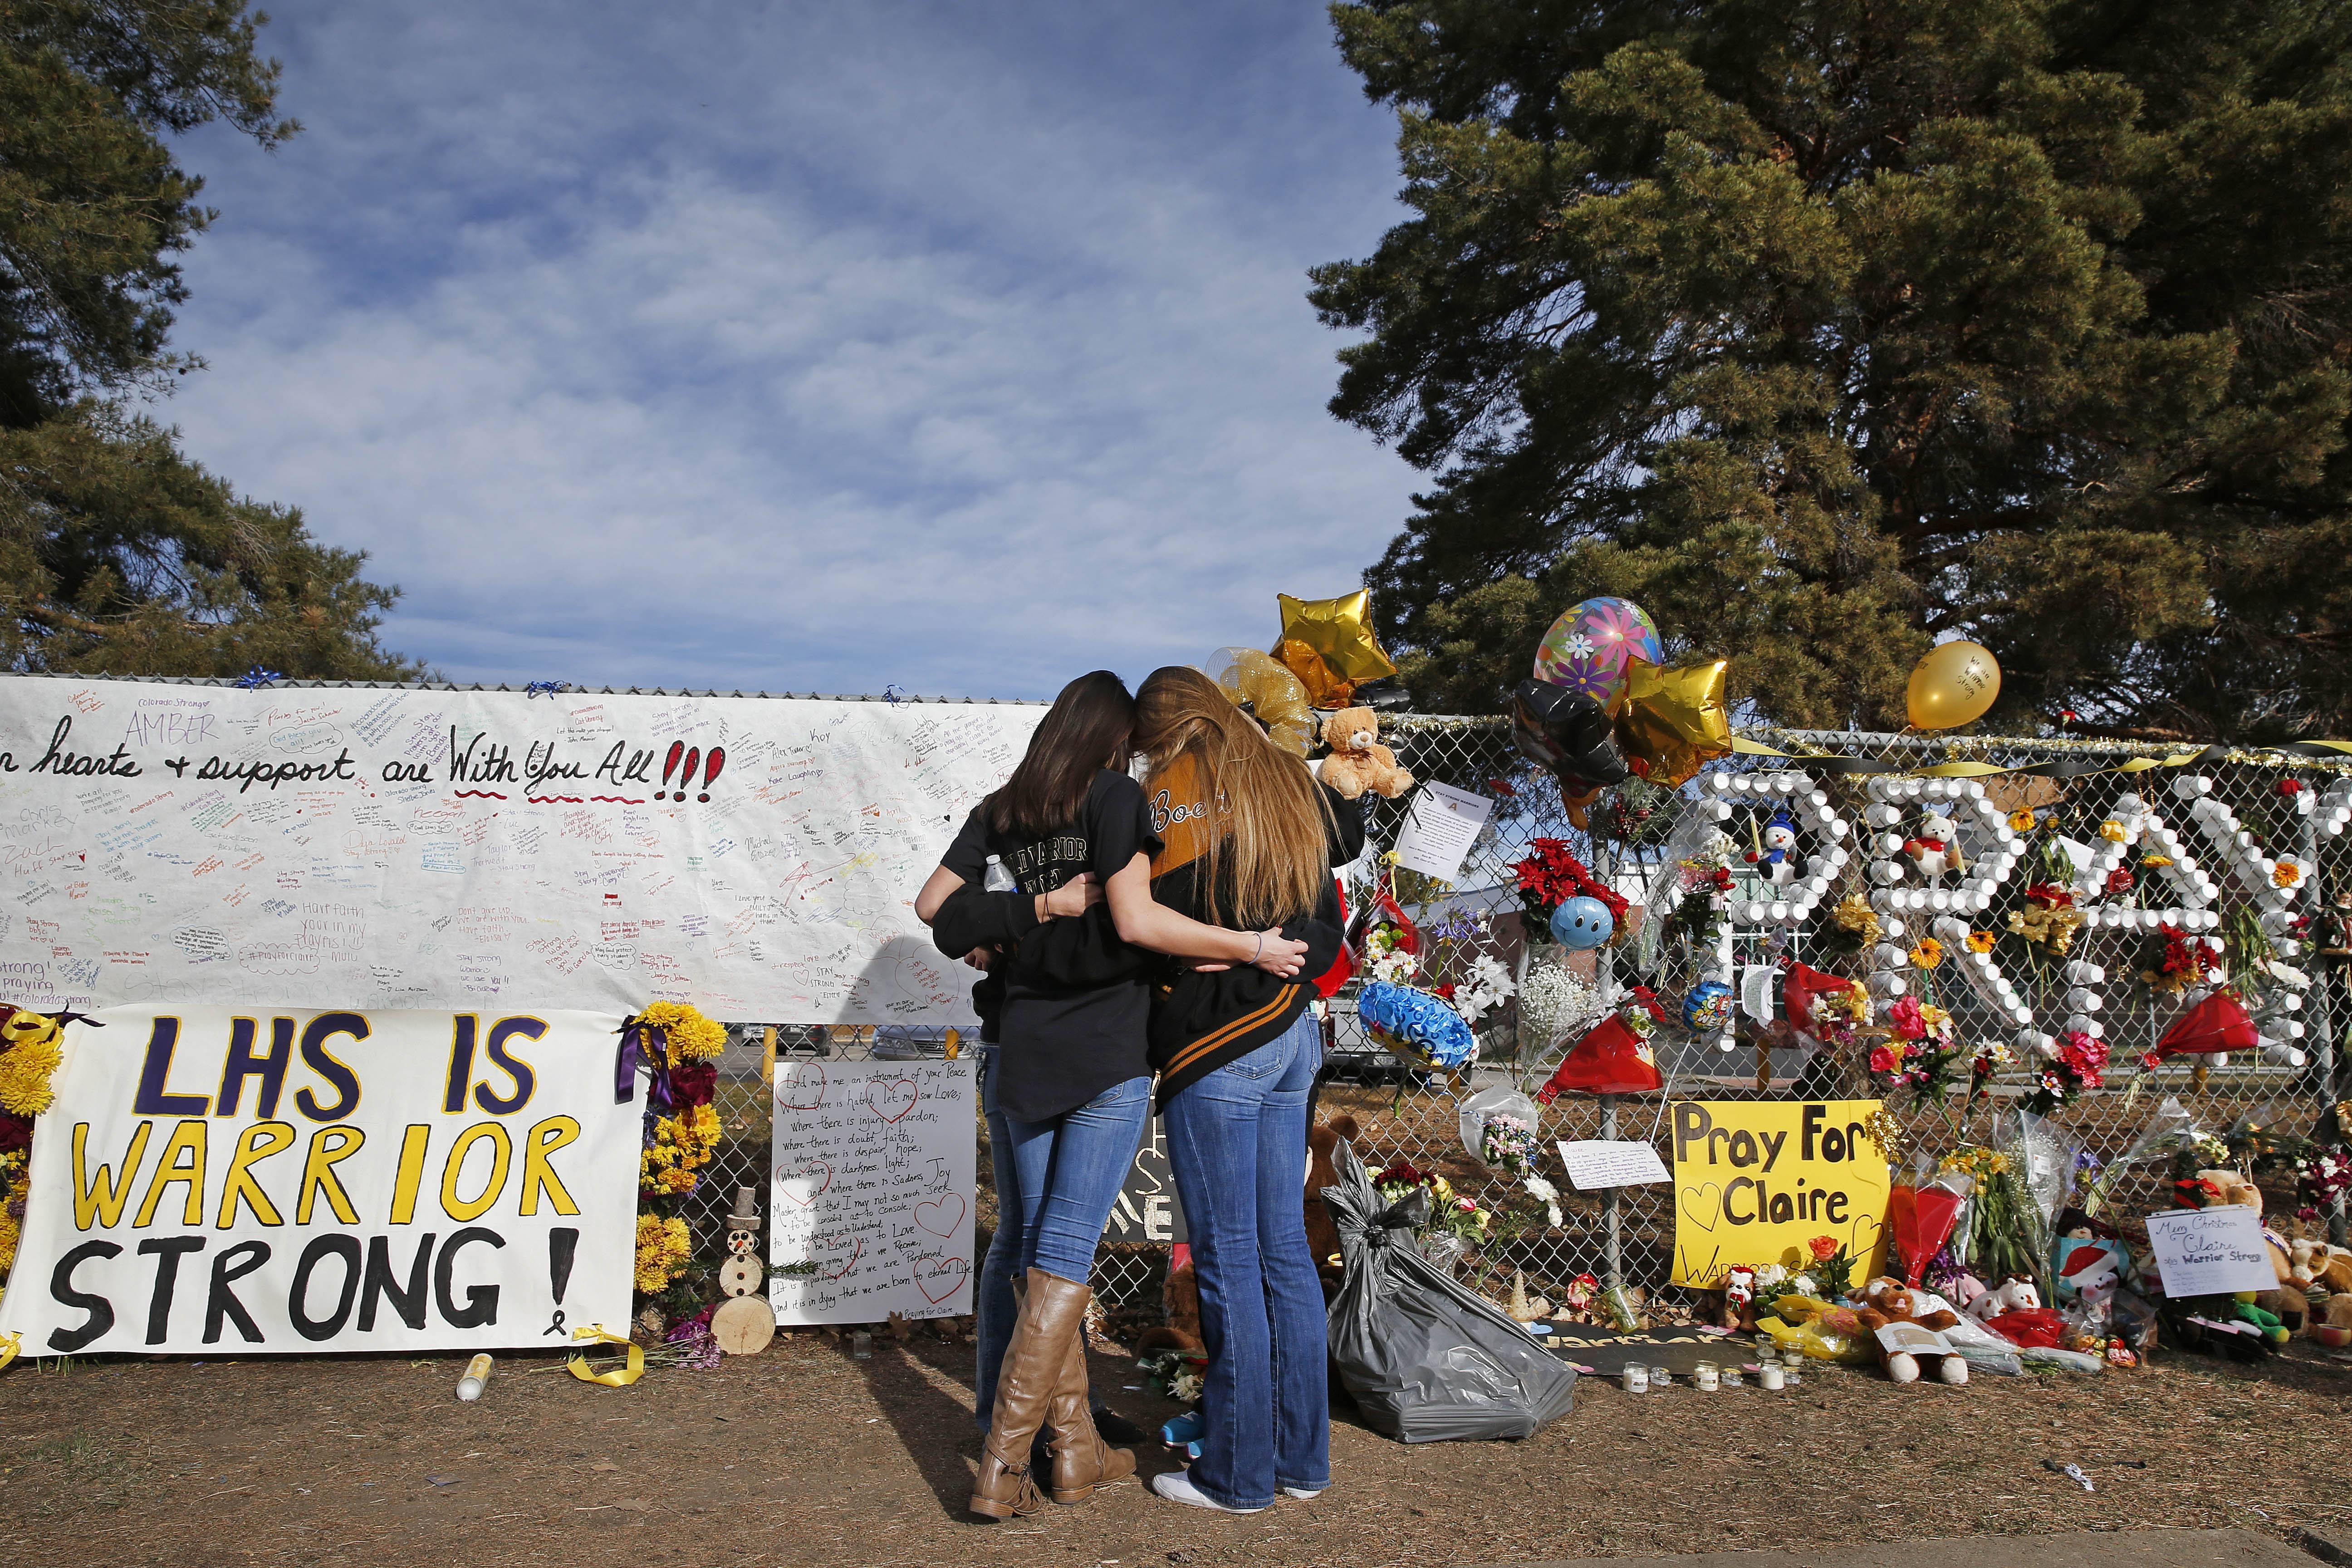 "In this December 2013 file photo, Arapahoe High School students hug at a tribute site for fatally-wounded student Claire Davis, who was shot by classmate Karl Pierson during a school attack six days earlier at Arapahoe High School, in Centennial, Colo. School disciplinary documents obtained Associated Press show that less than a week after Pierson shouted a death threat against his debate coach in a school parking lot, school officials determined that he was ""not a high-level of threat"" and allowed him to return to his classes."